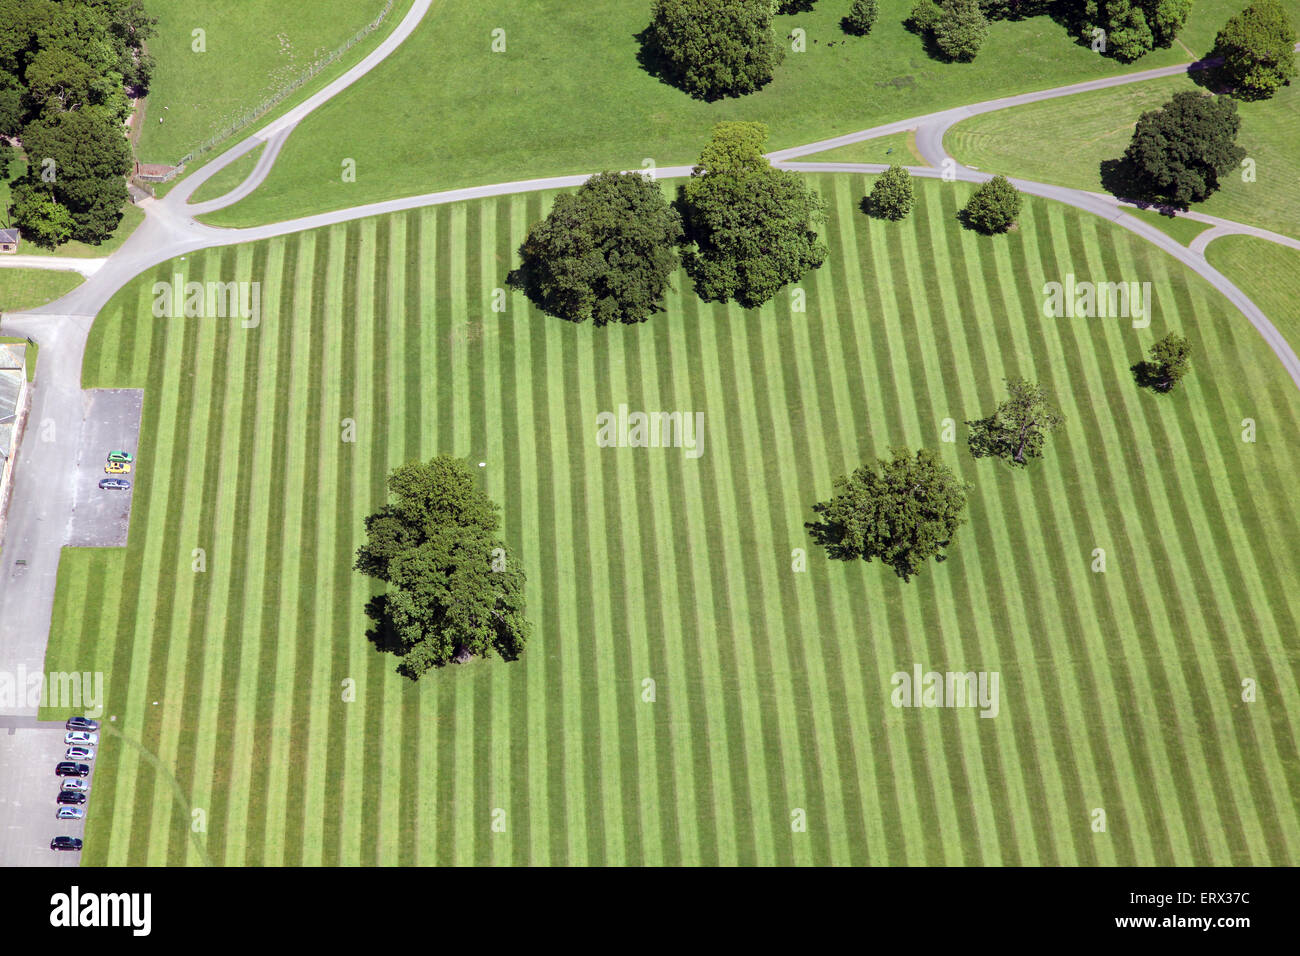 aerial view of a striped lawn, stripey grass pattern with trees, UK - Stock Image